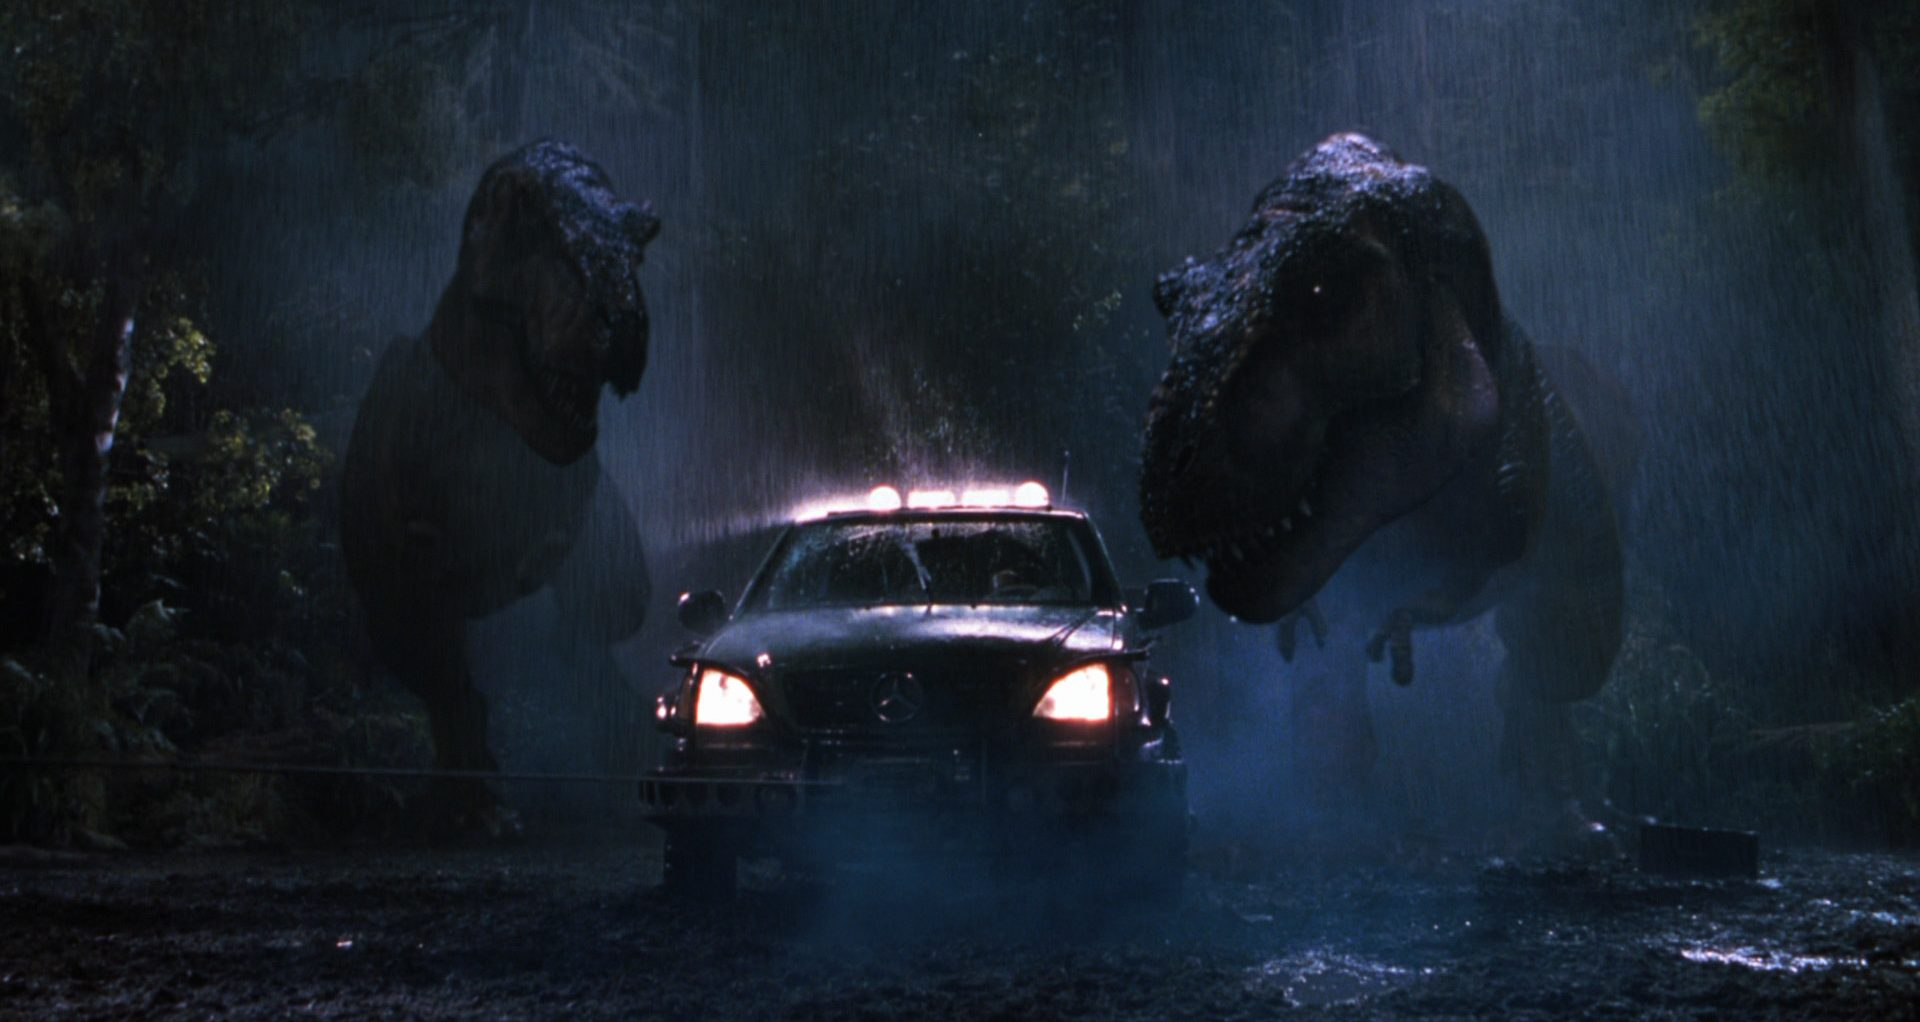 T-rex attack in the worst possible moment